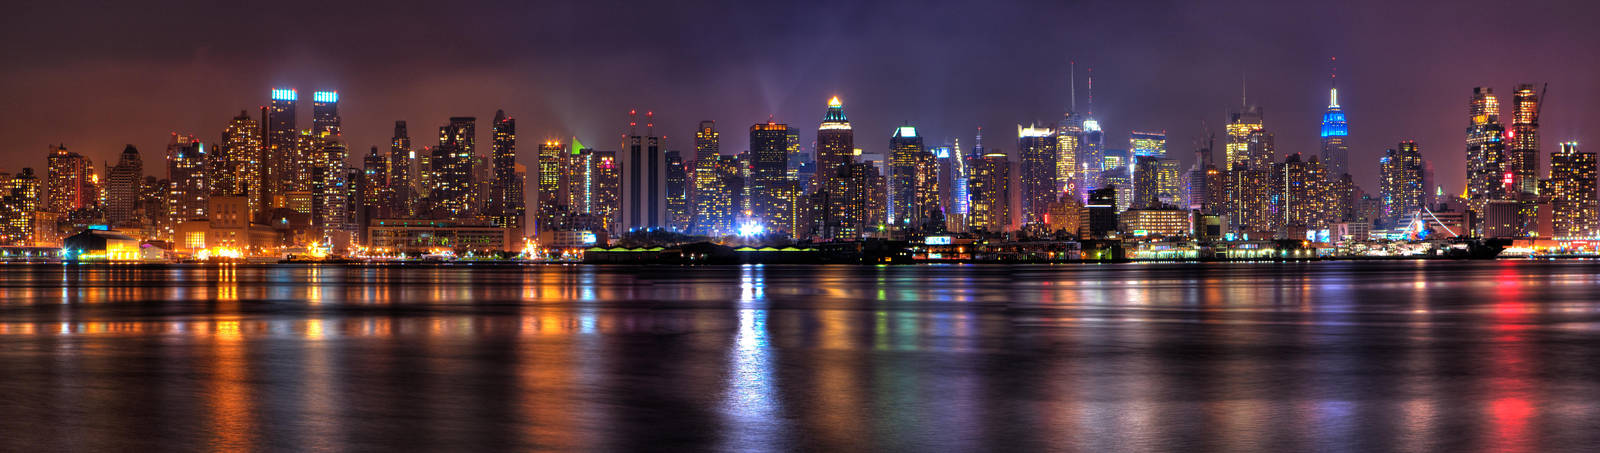 NYC Skyline from Jersey by sp1te